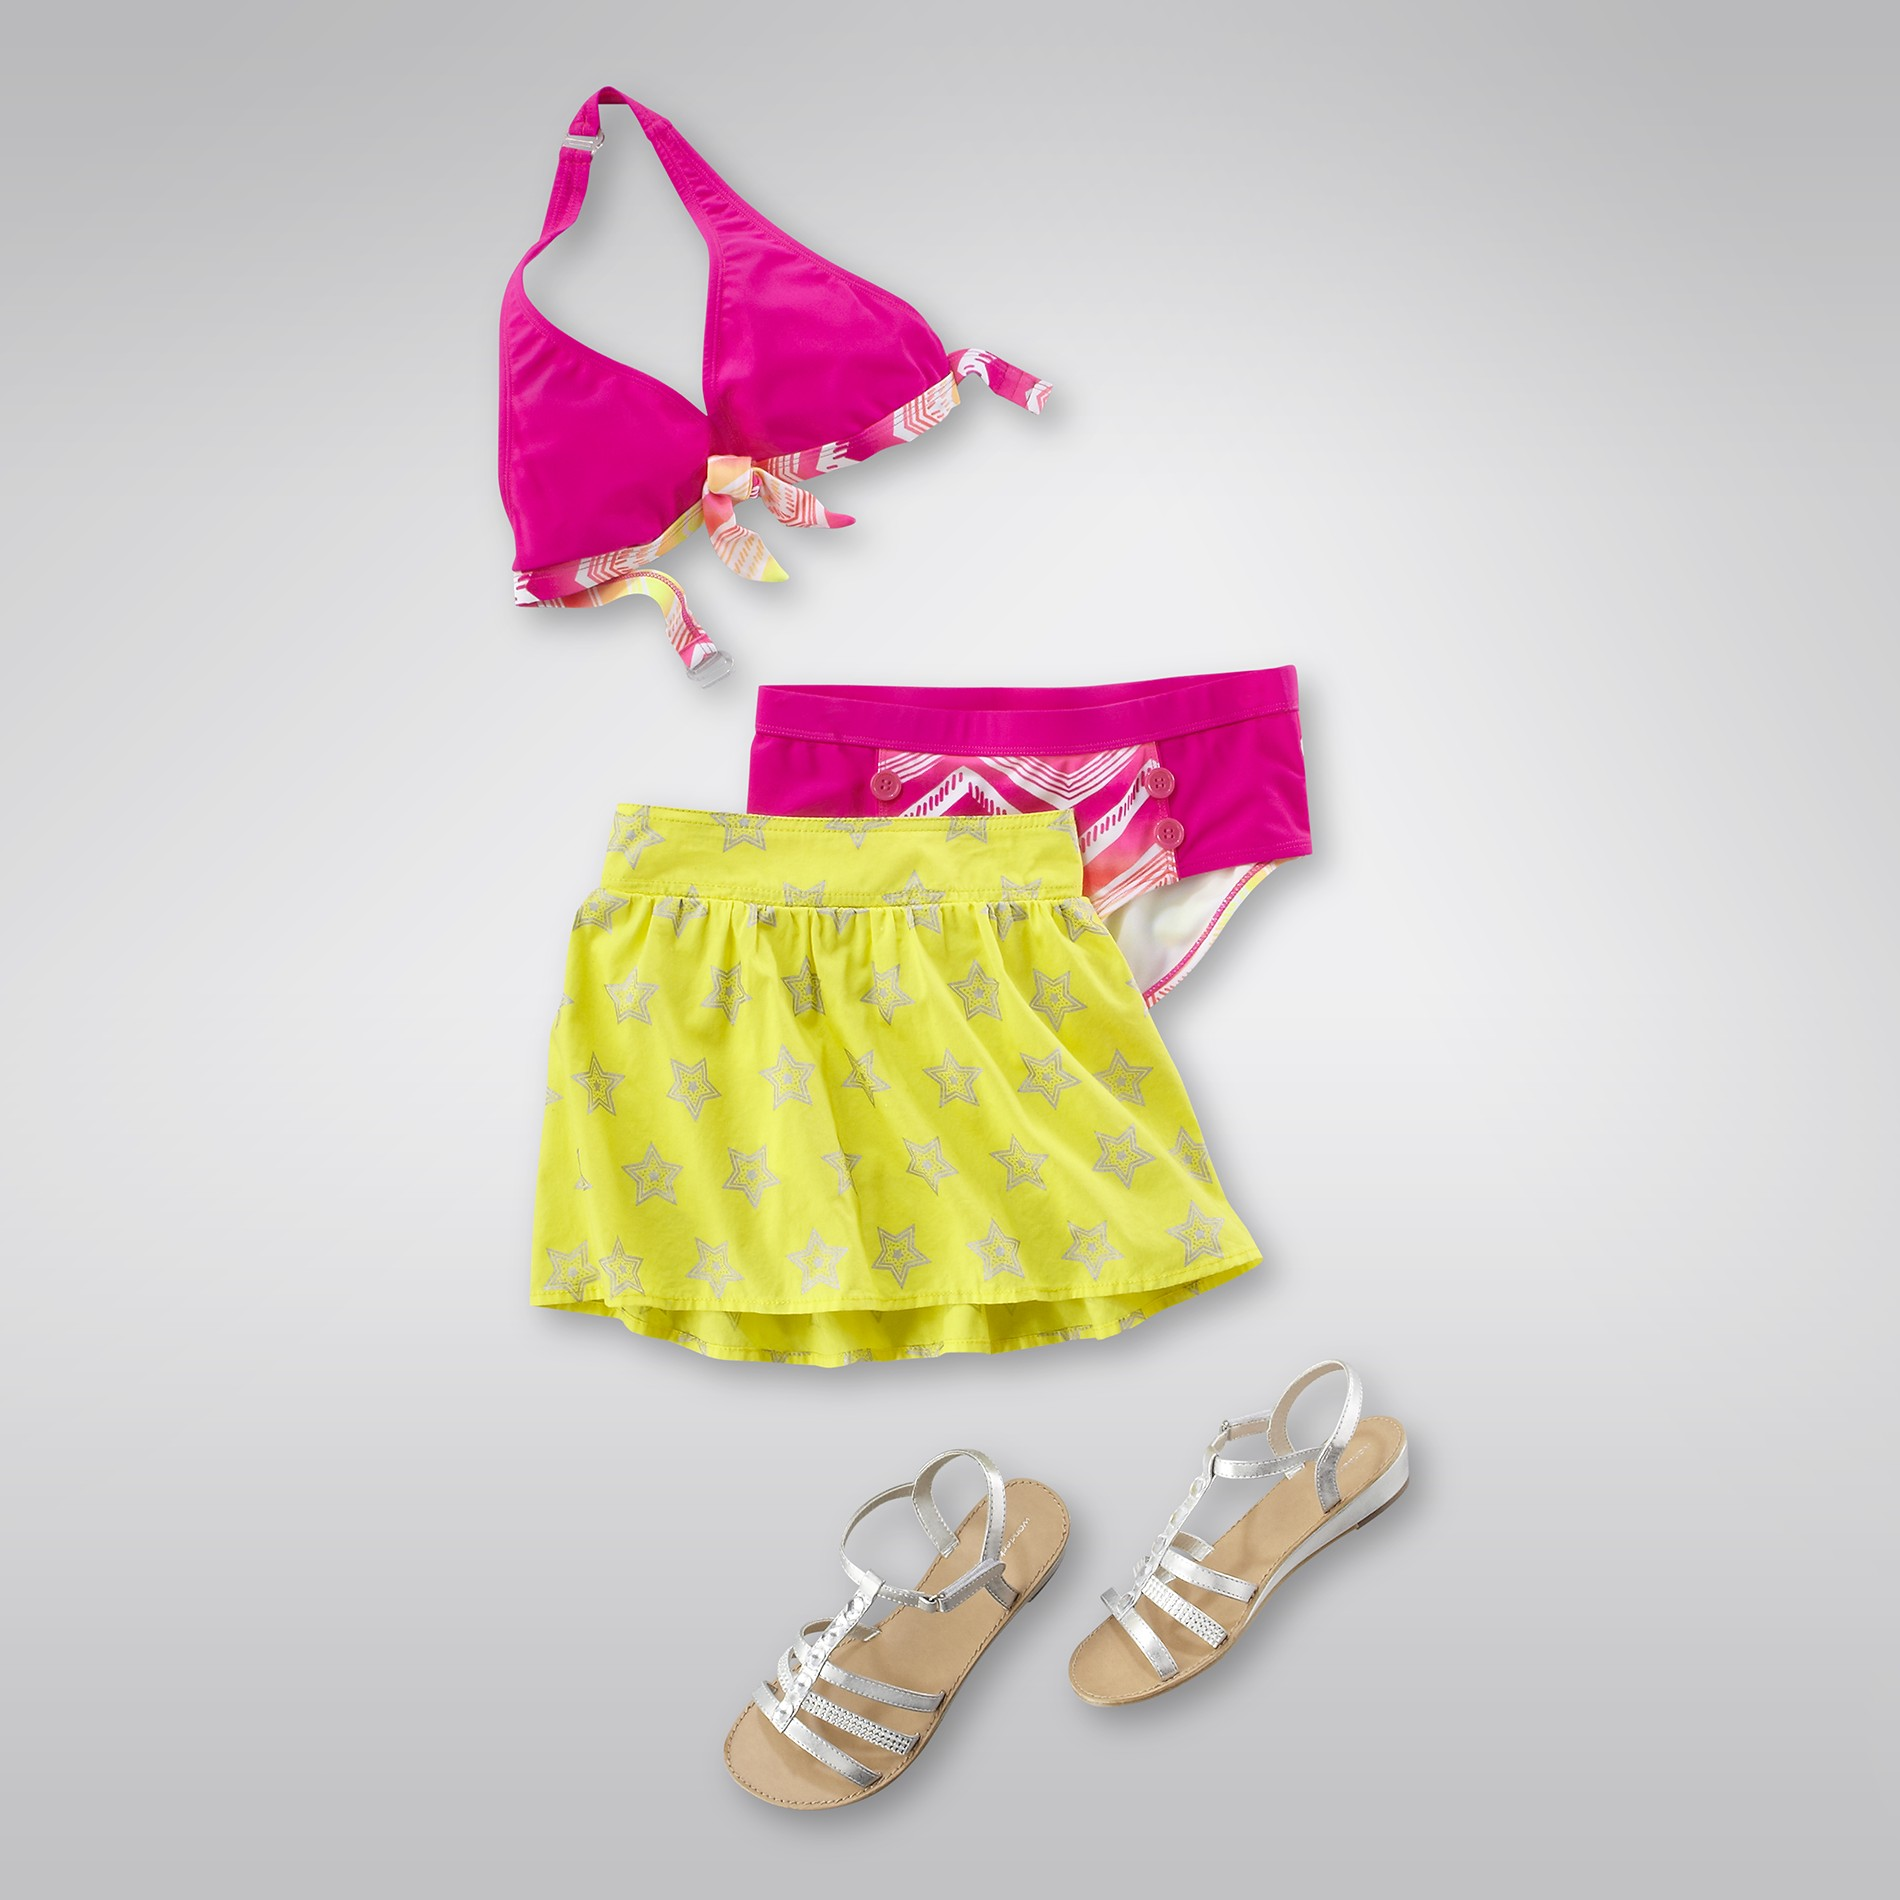 Shining Star Outfit at Kmart.com